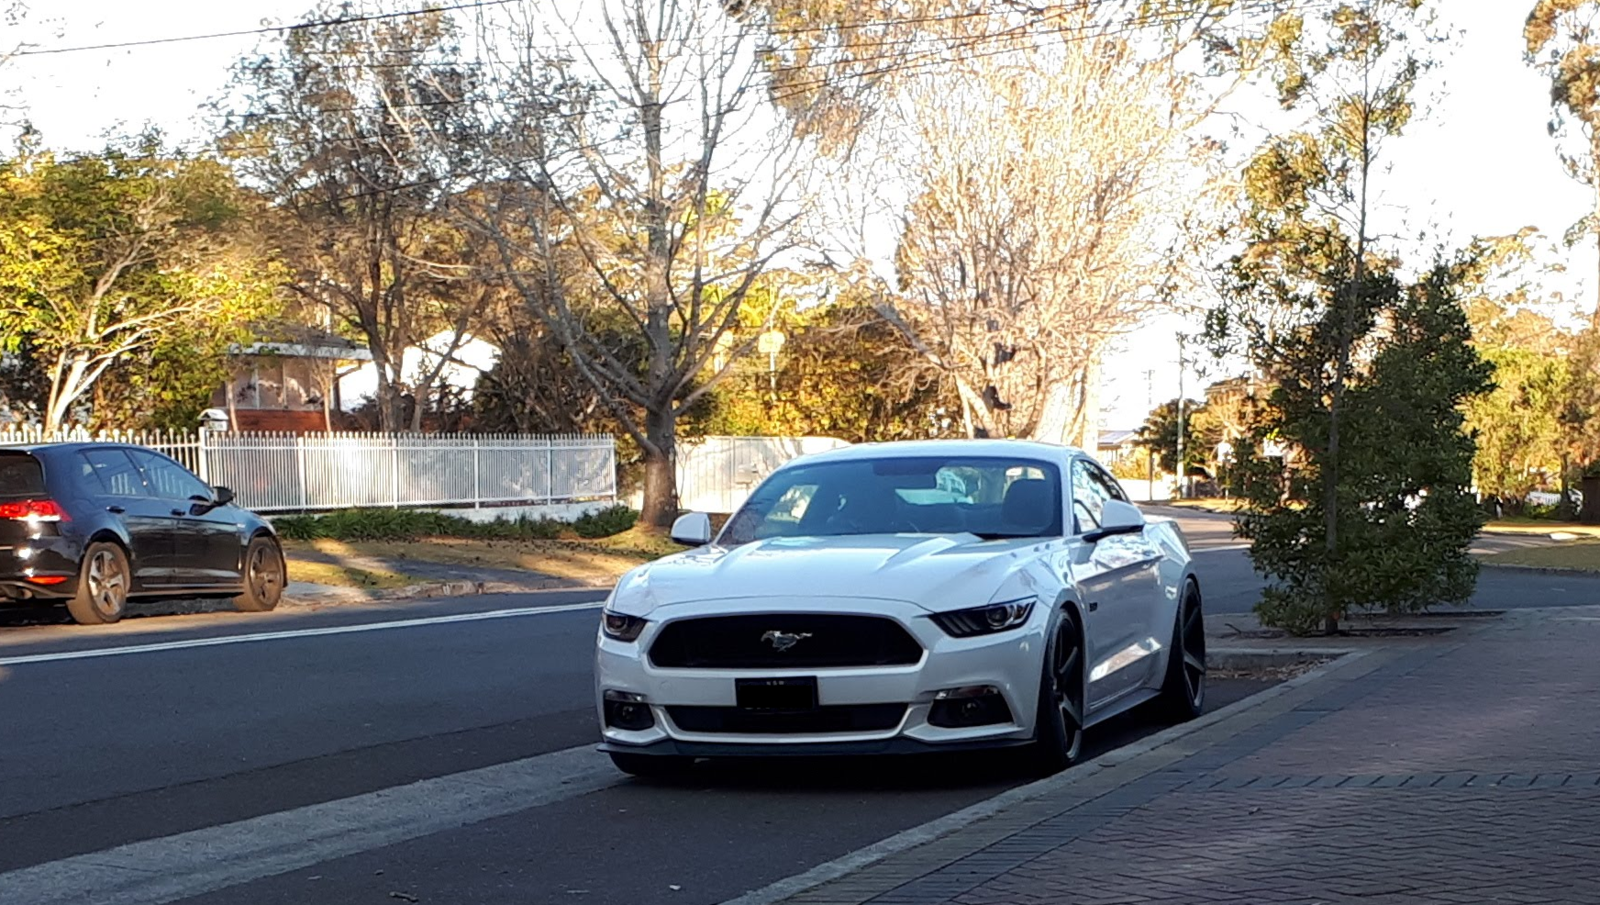 Mustang parked.png